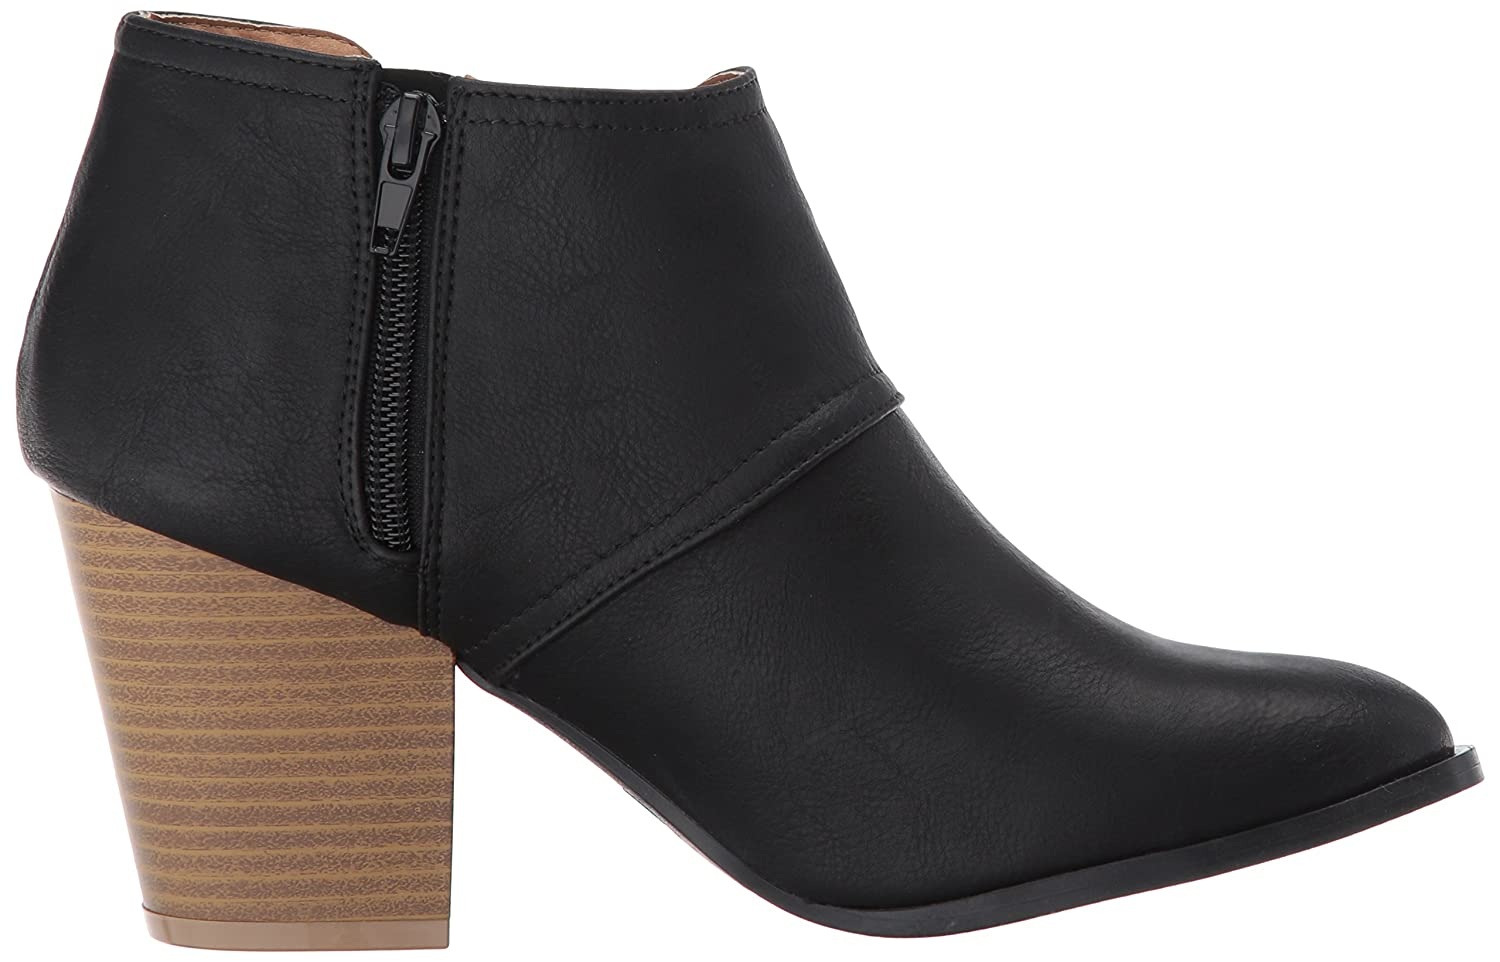 Qupid Women's Prenton-10 Ankle Bootie B06Y62TLRK 5.5 B(M) US|Black Burnish Polyurethane